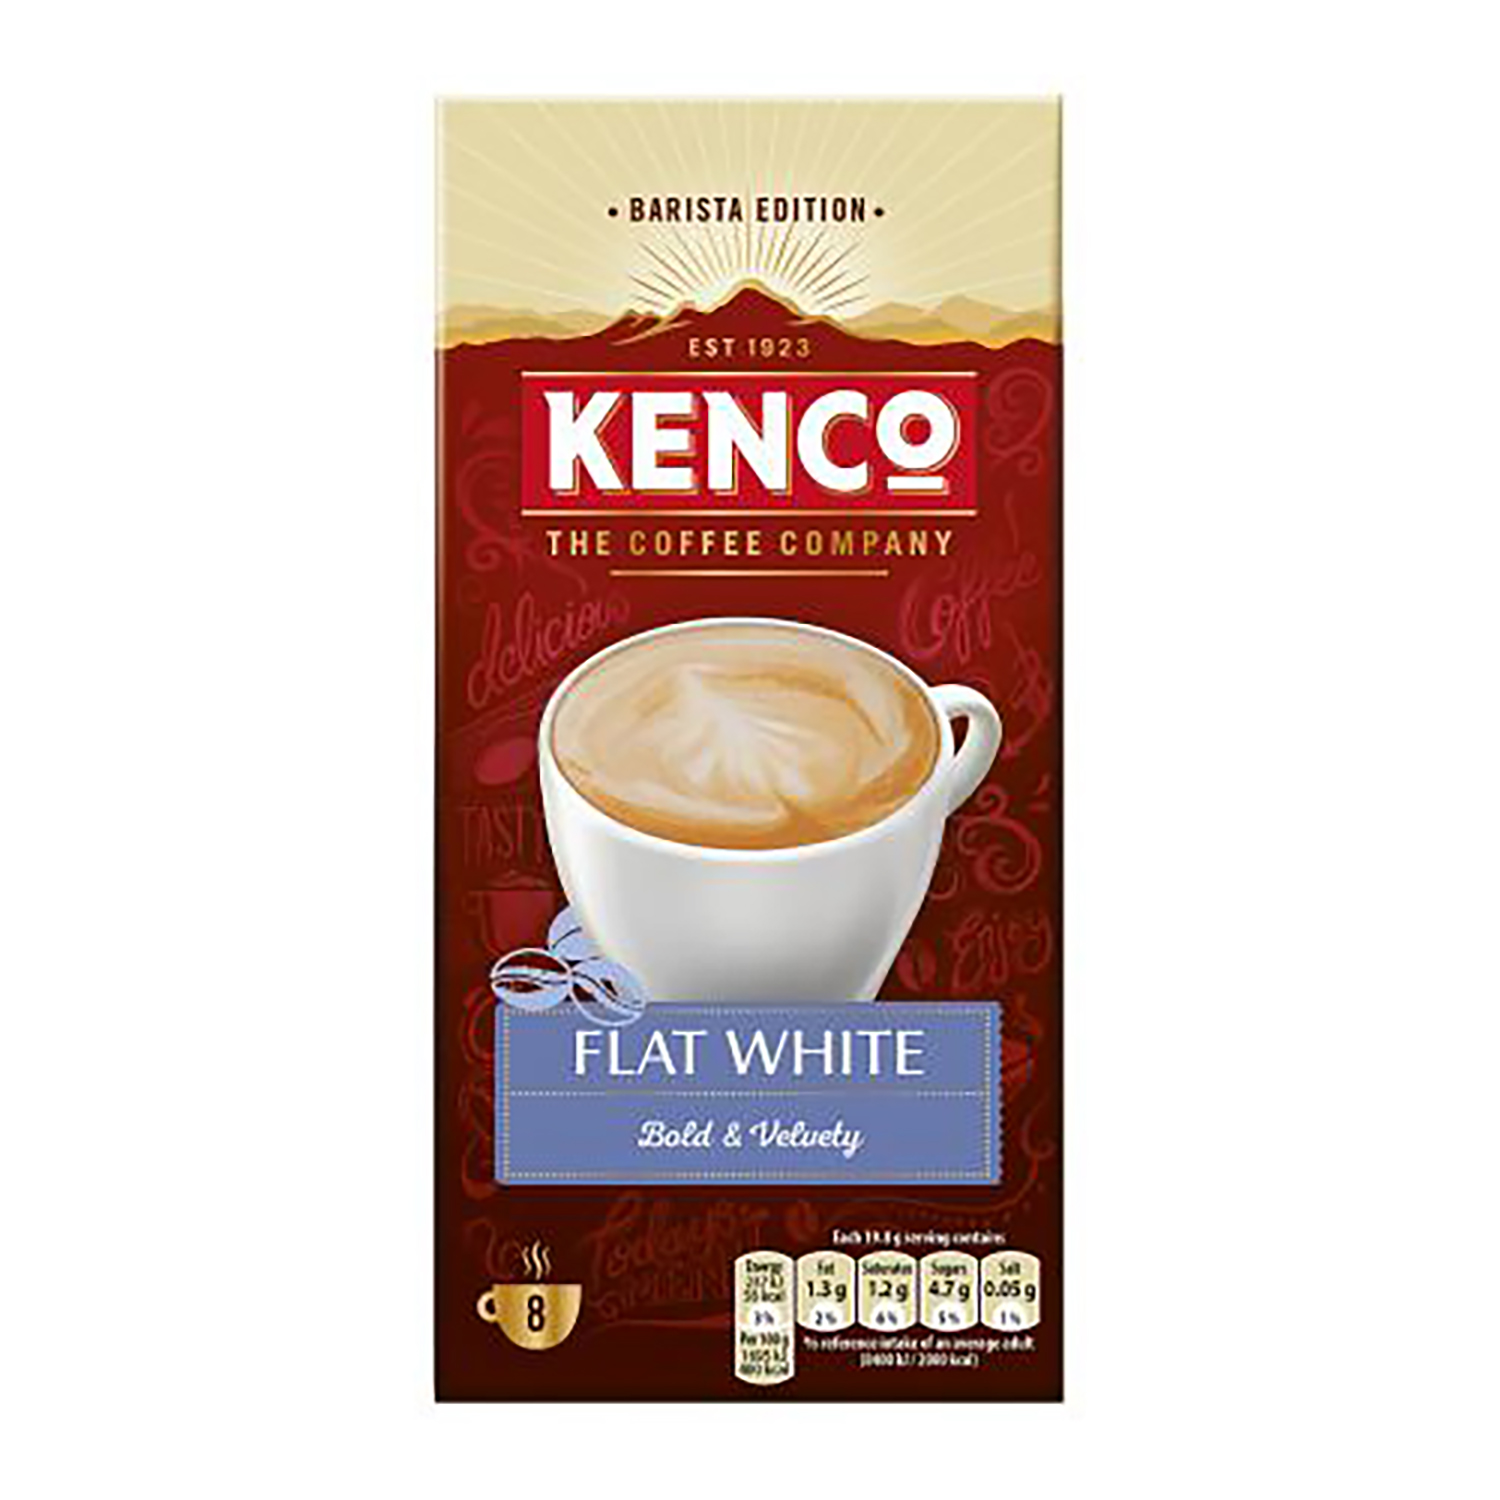 Coffee Kenco Flat White Instant Sachet Ref 4041493 Pack 8 x 5 Boxes